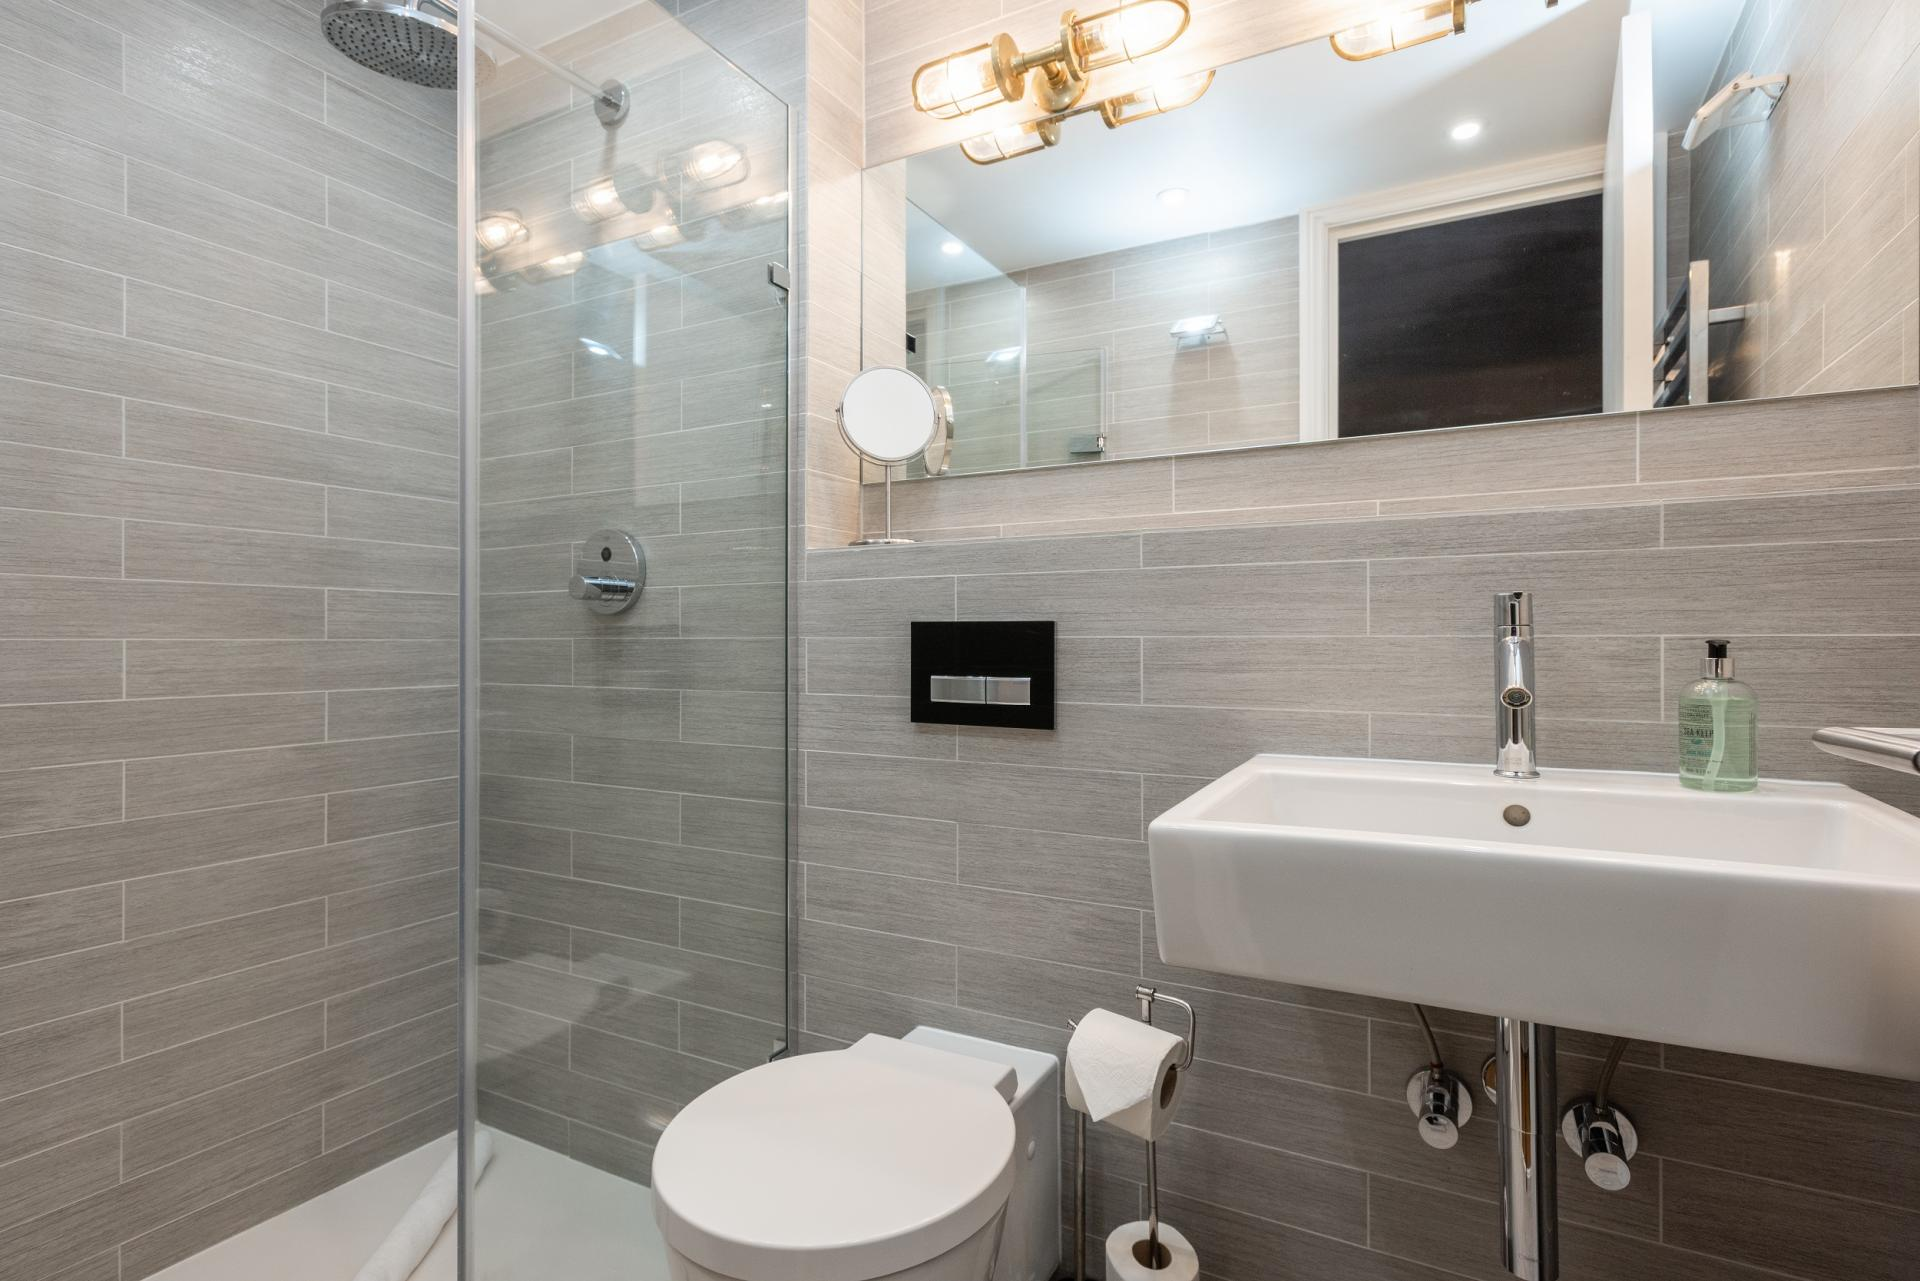 Shower at The Oxford Gardens, White City, London - Citybase Apartments